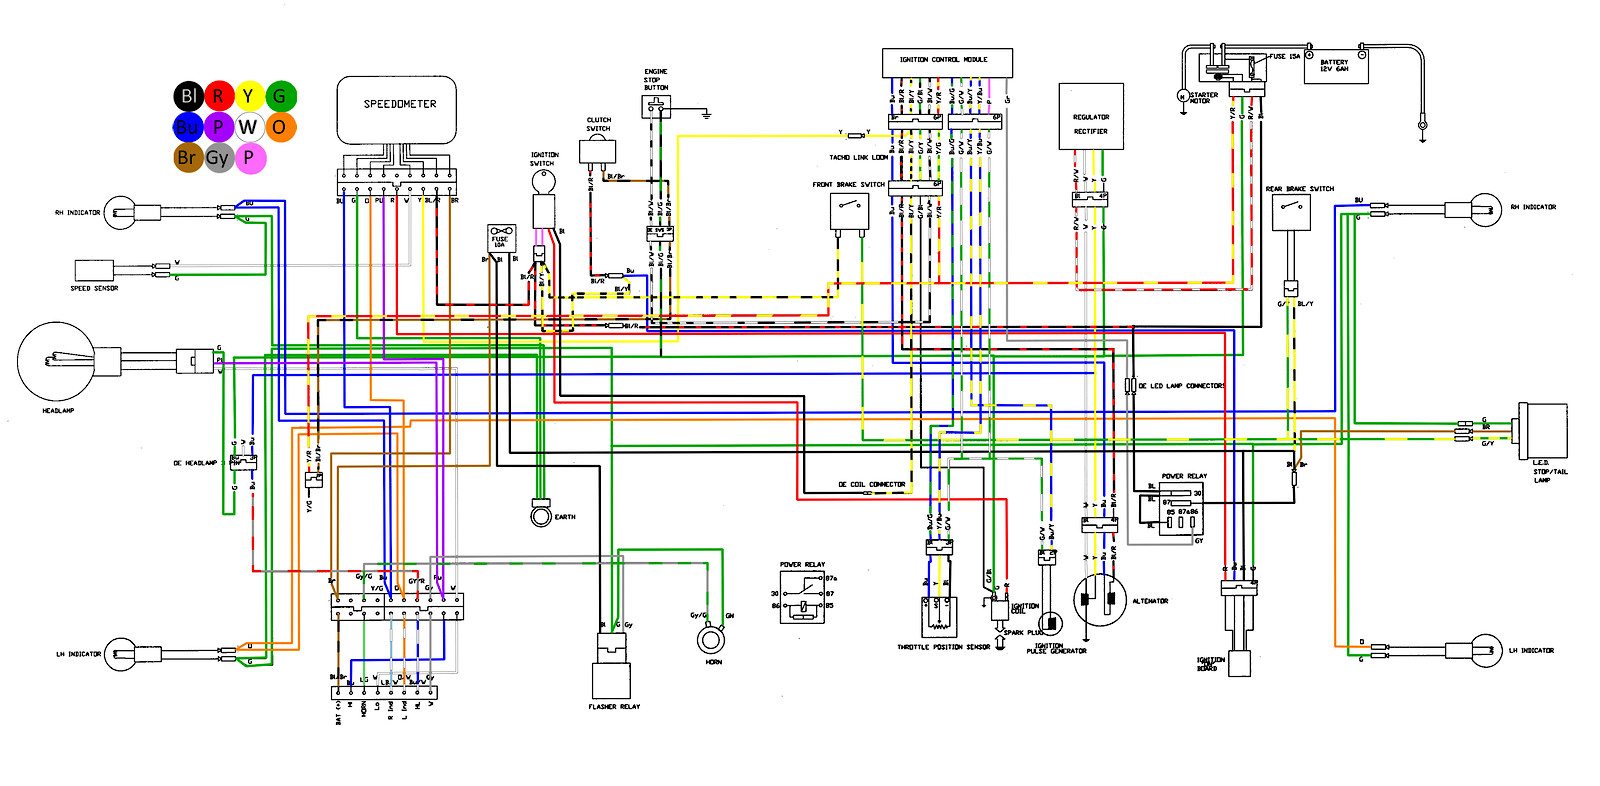 Magnificent Honda 150 Wiring Diagram Wiring Diagram Wiring Cloud Philuggs Outletorg